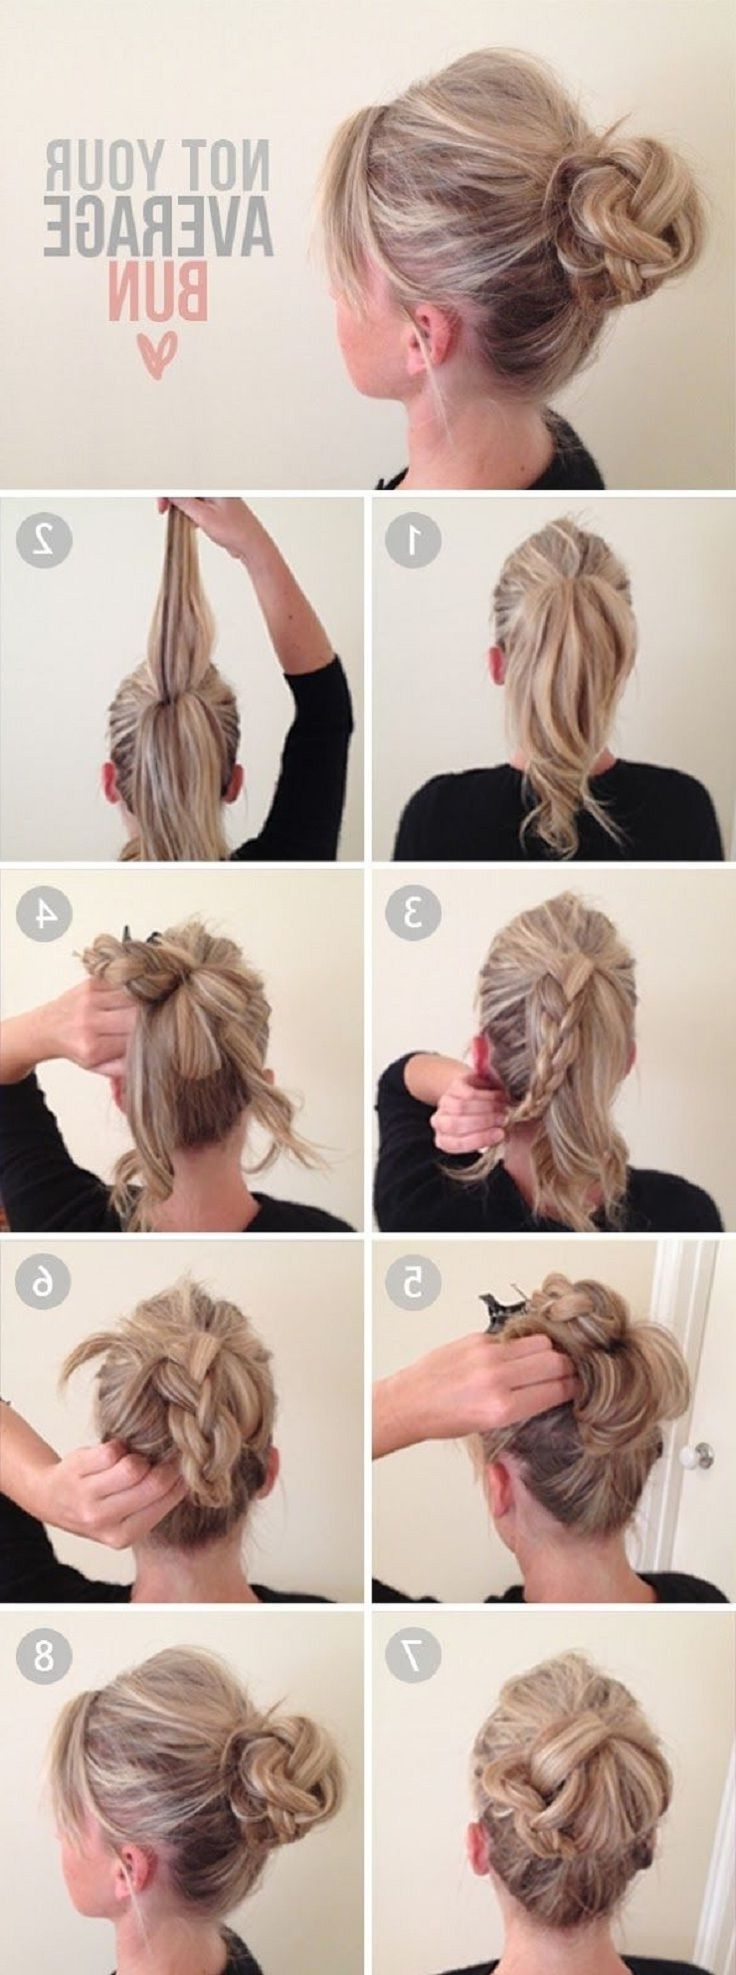 14 Amazing Double Braid Bun Hairstyles – Pretty Designs Intended For Widely Used Messy Double Braid Hairstyles (View 3 of 15)